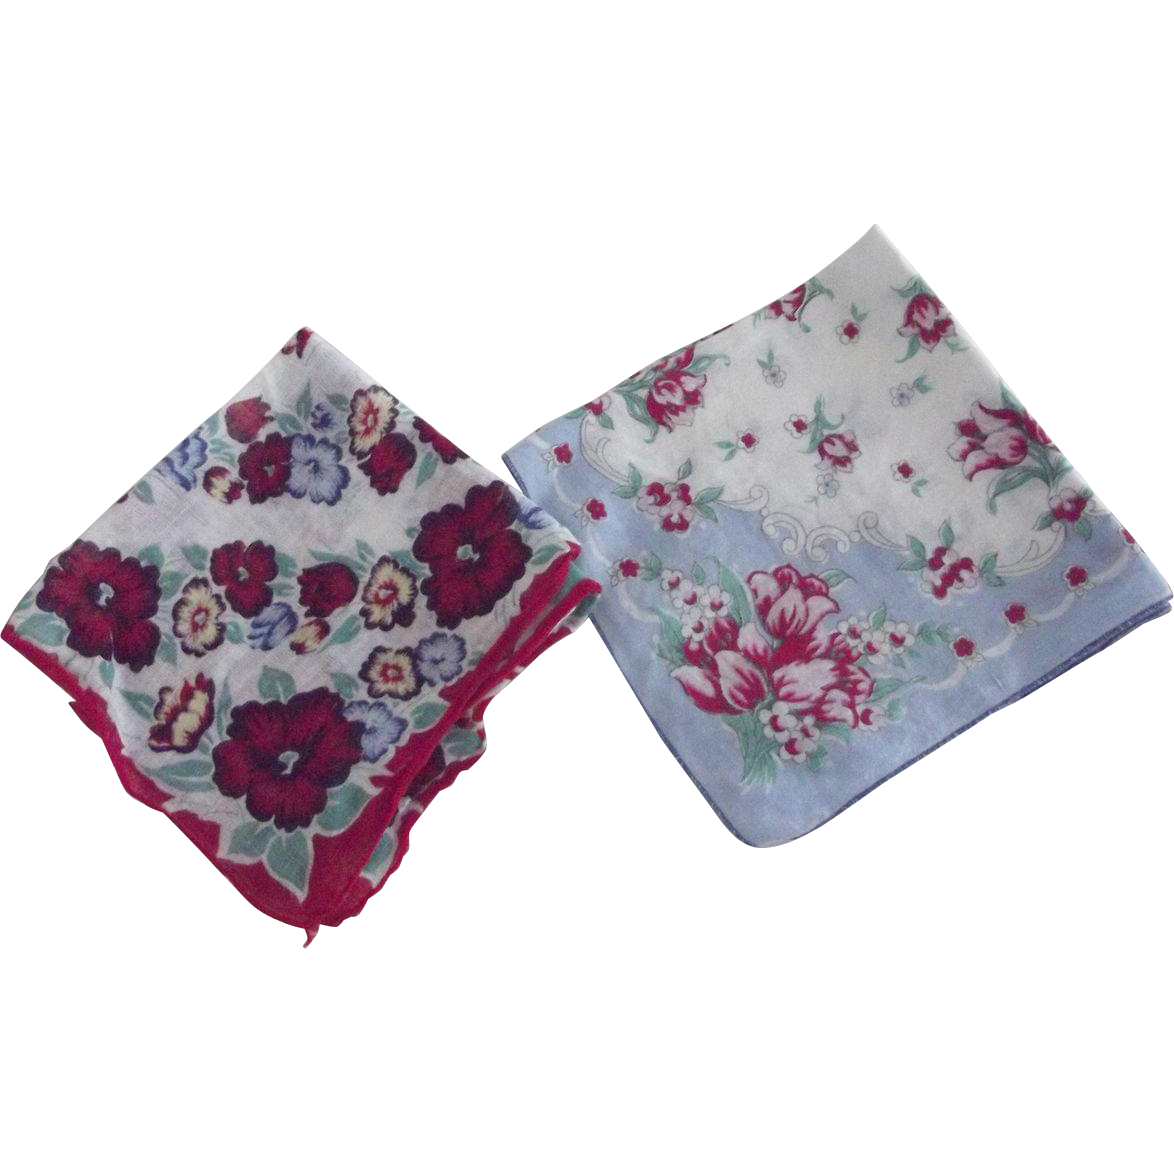 Pair of Floral Handerkerchiefs